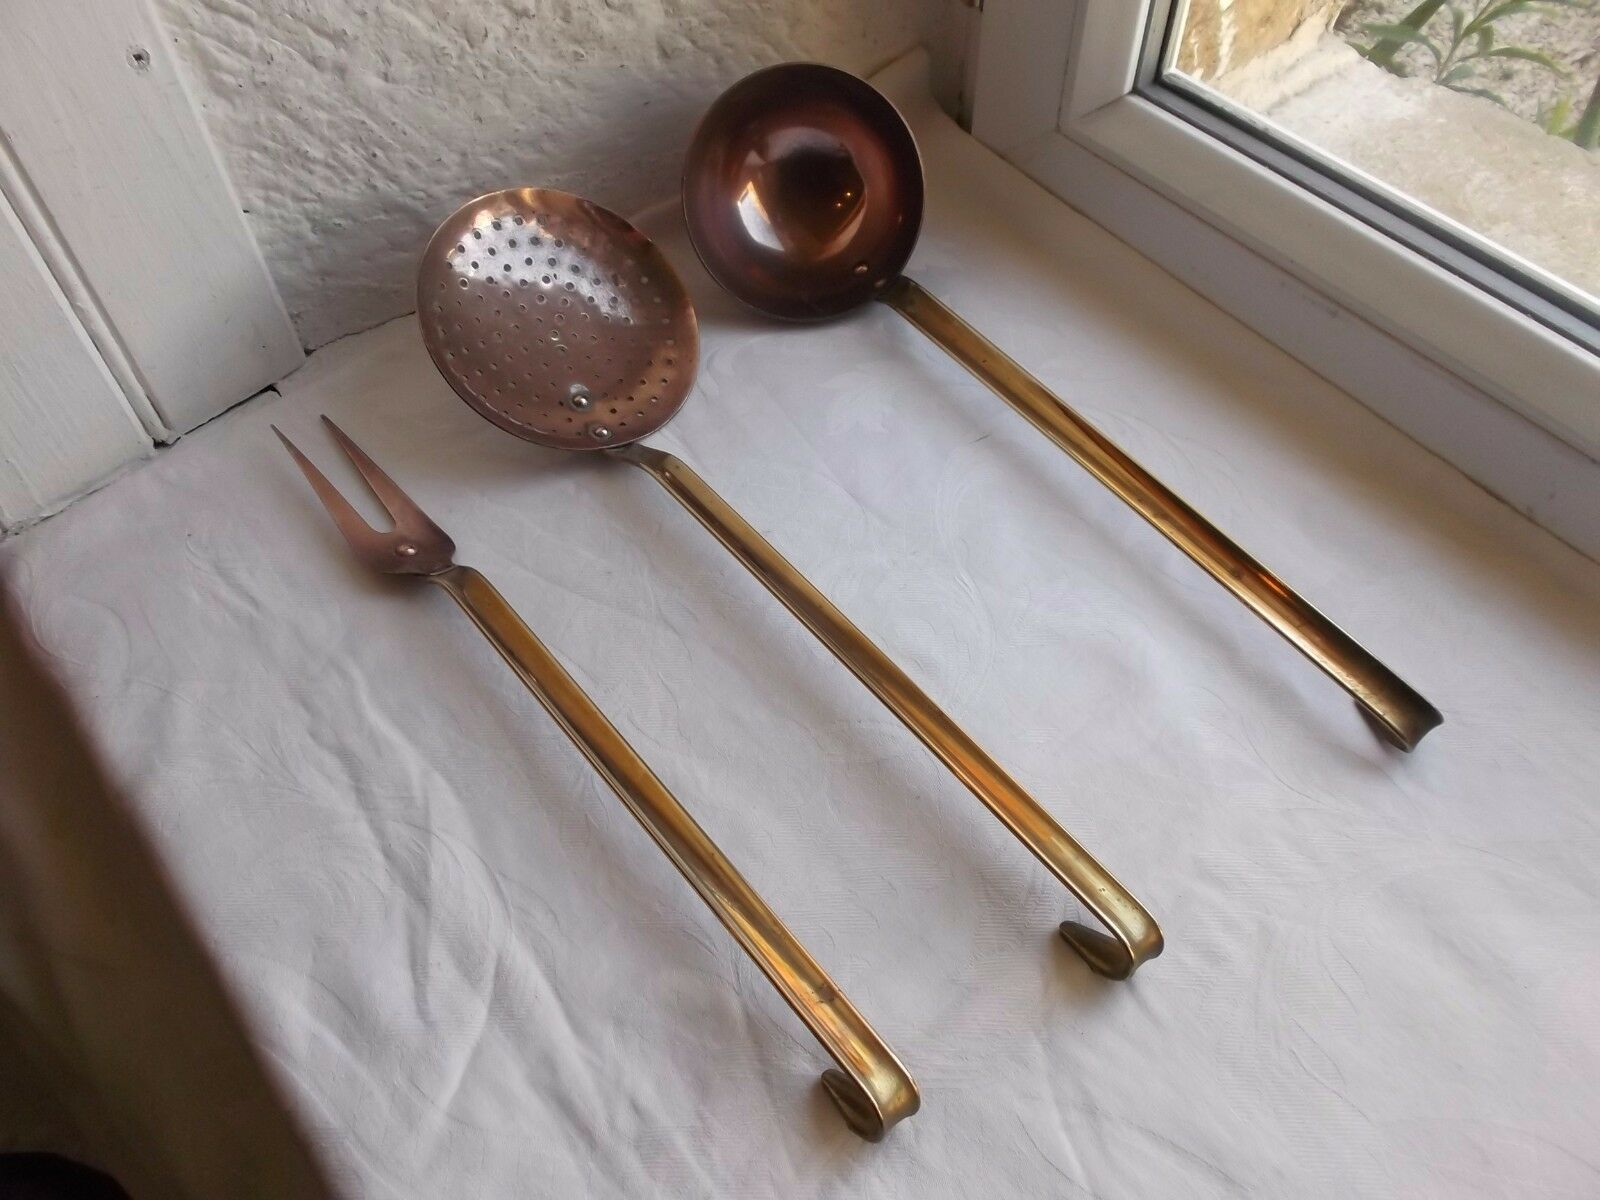 French set of 3 copper utensils brass handle, copper rivets vintage